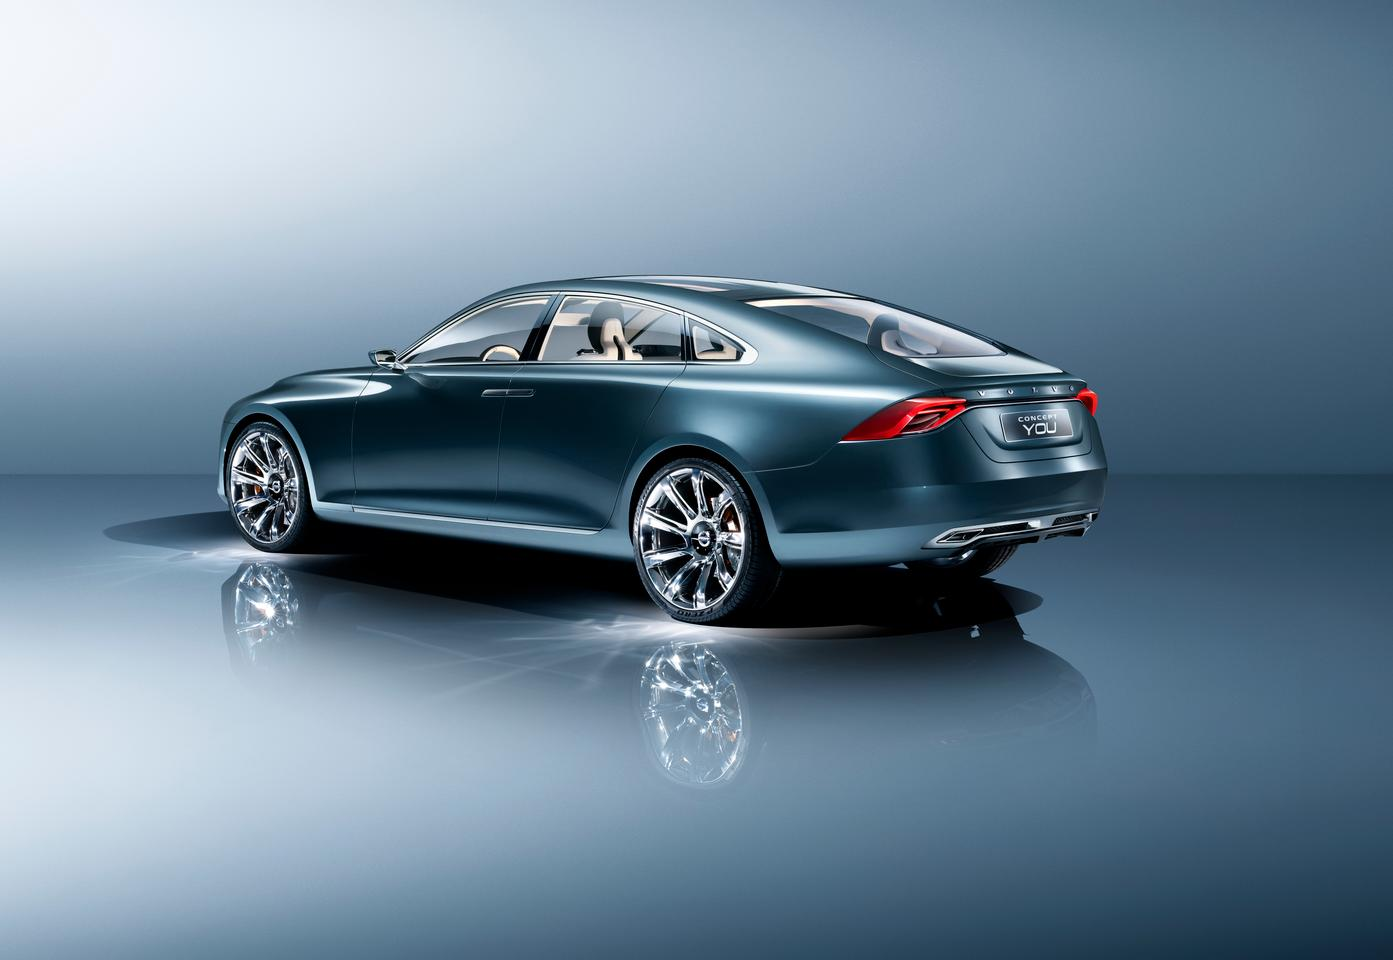 The coupe-like Volvo Concept You